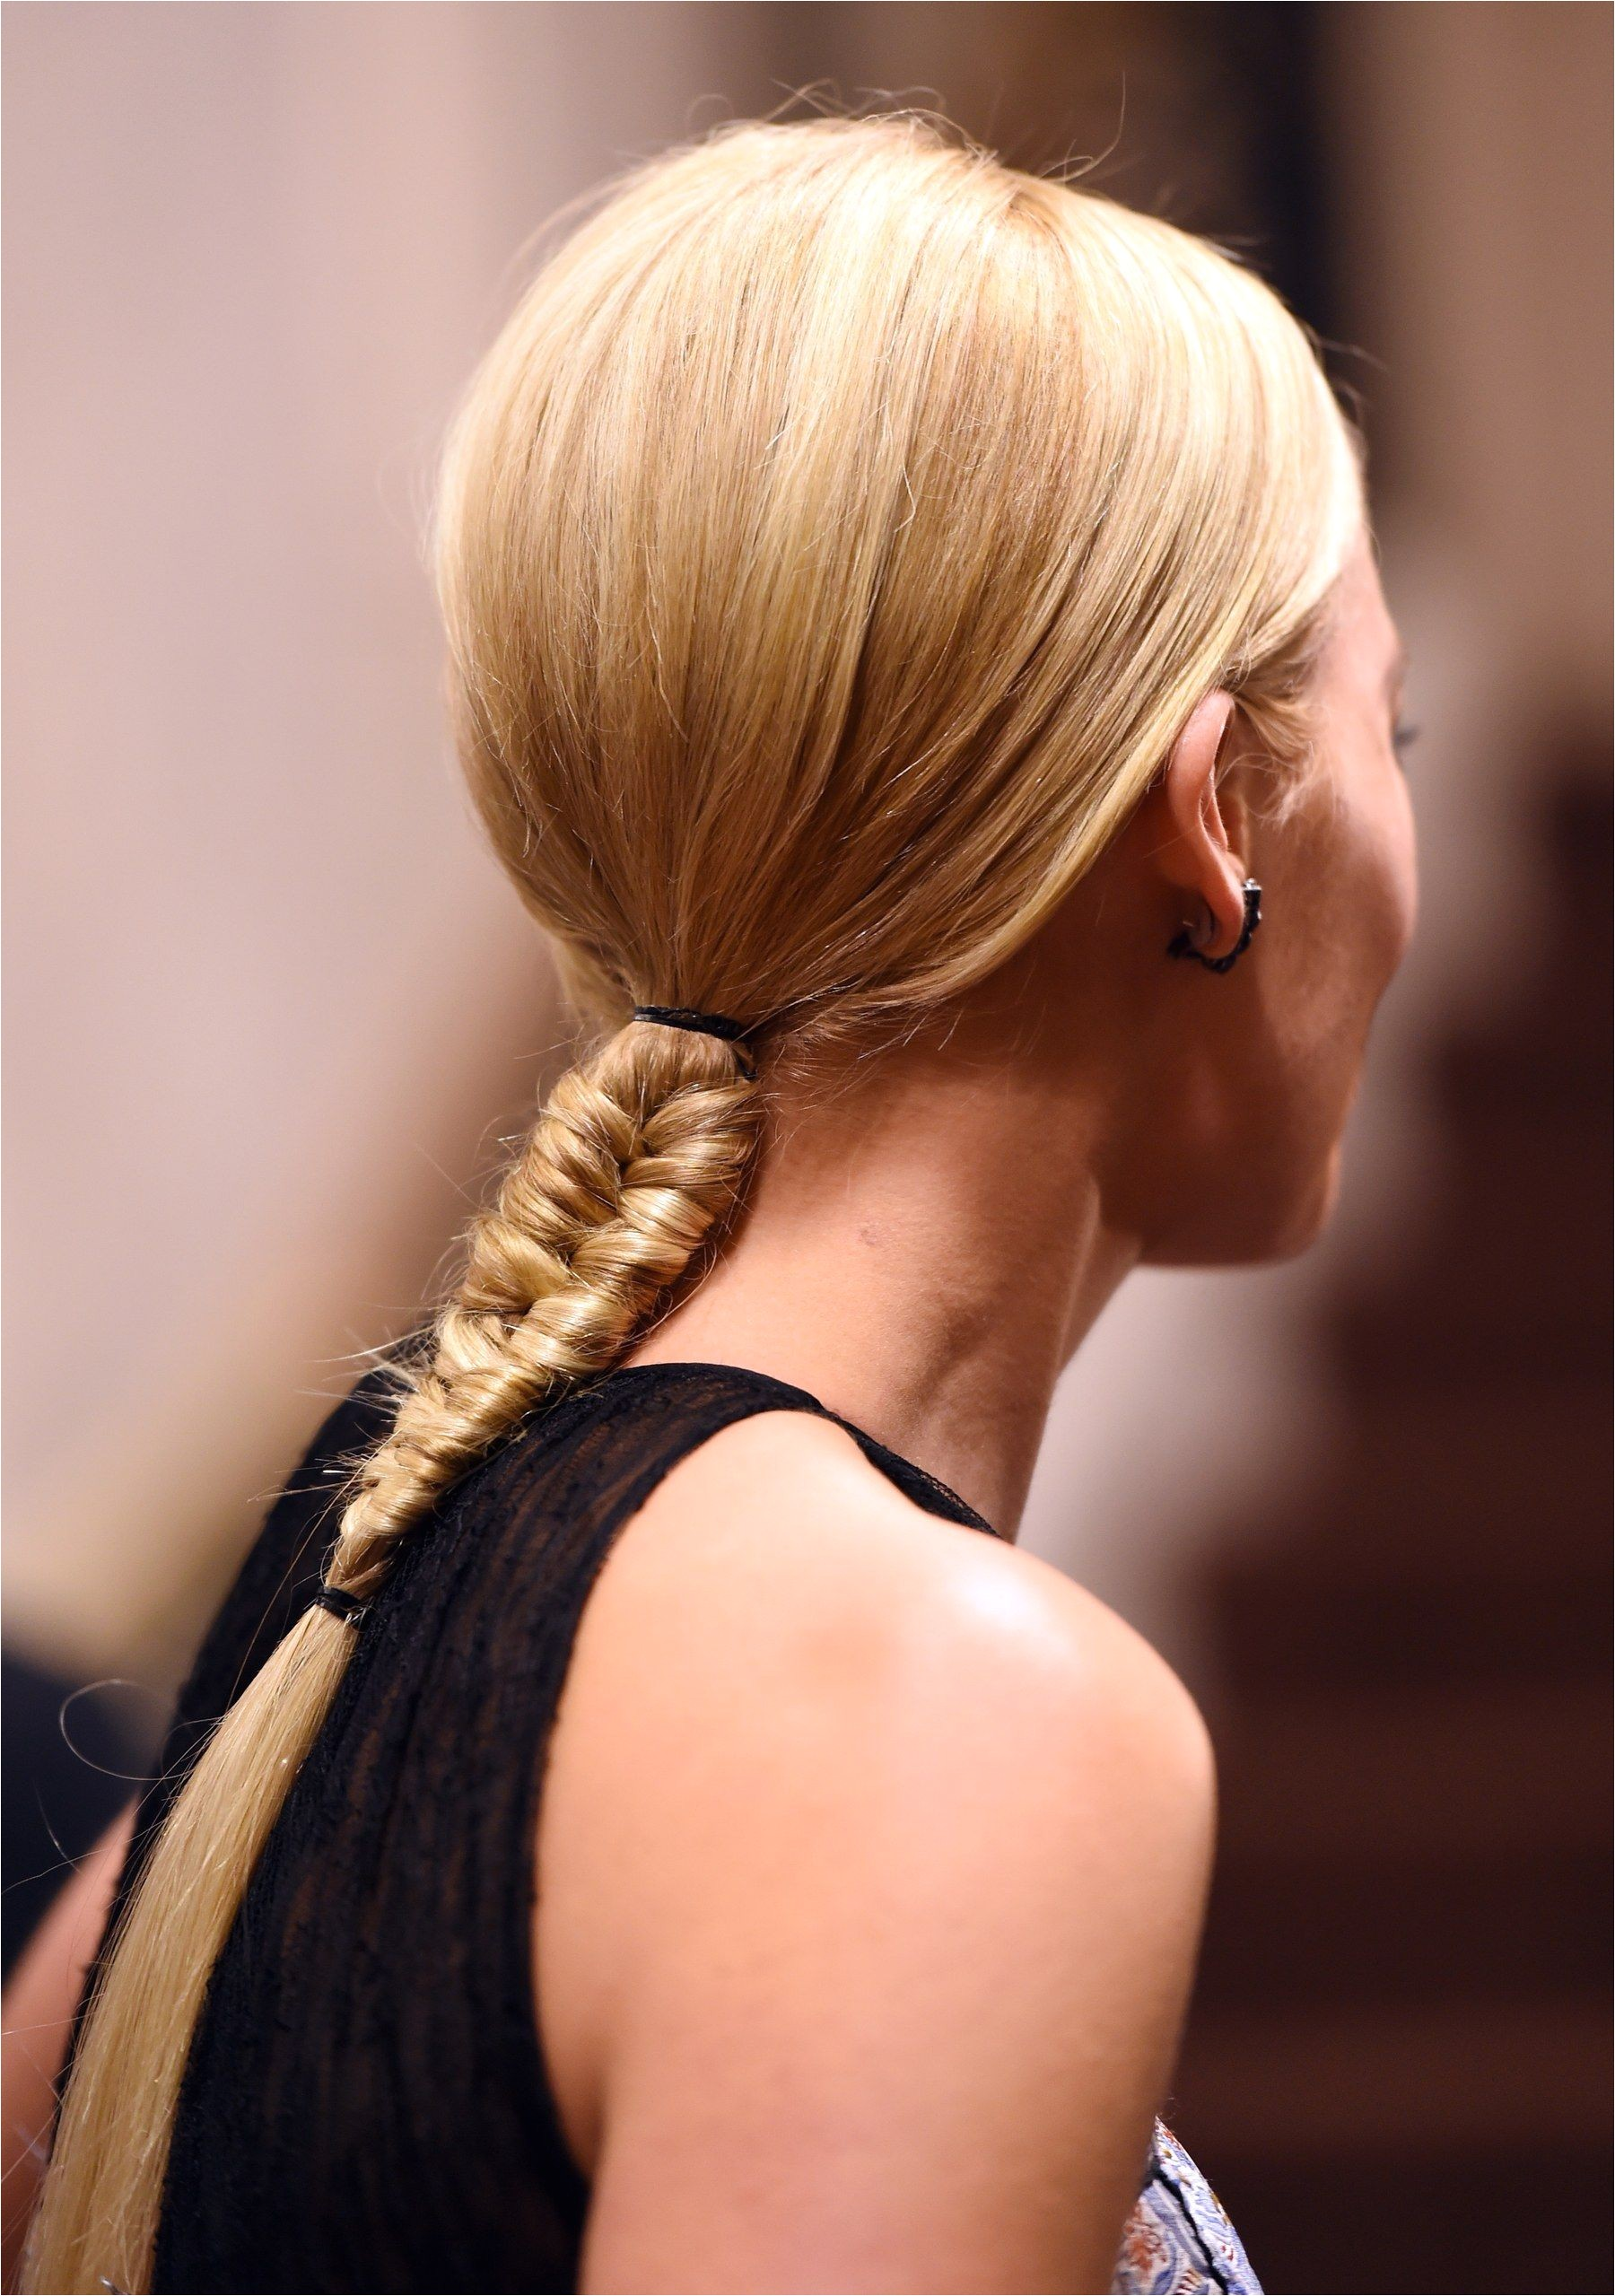 Swapping out your typical three strand braid for a fishtail braid can instantly upgrade your